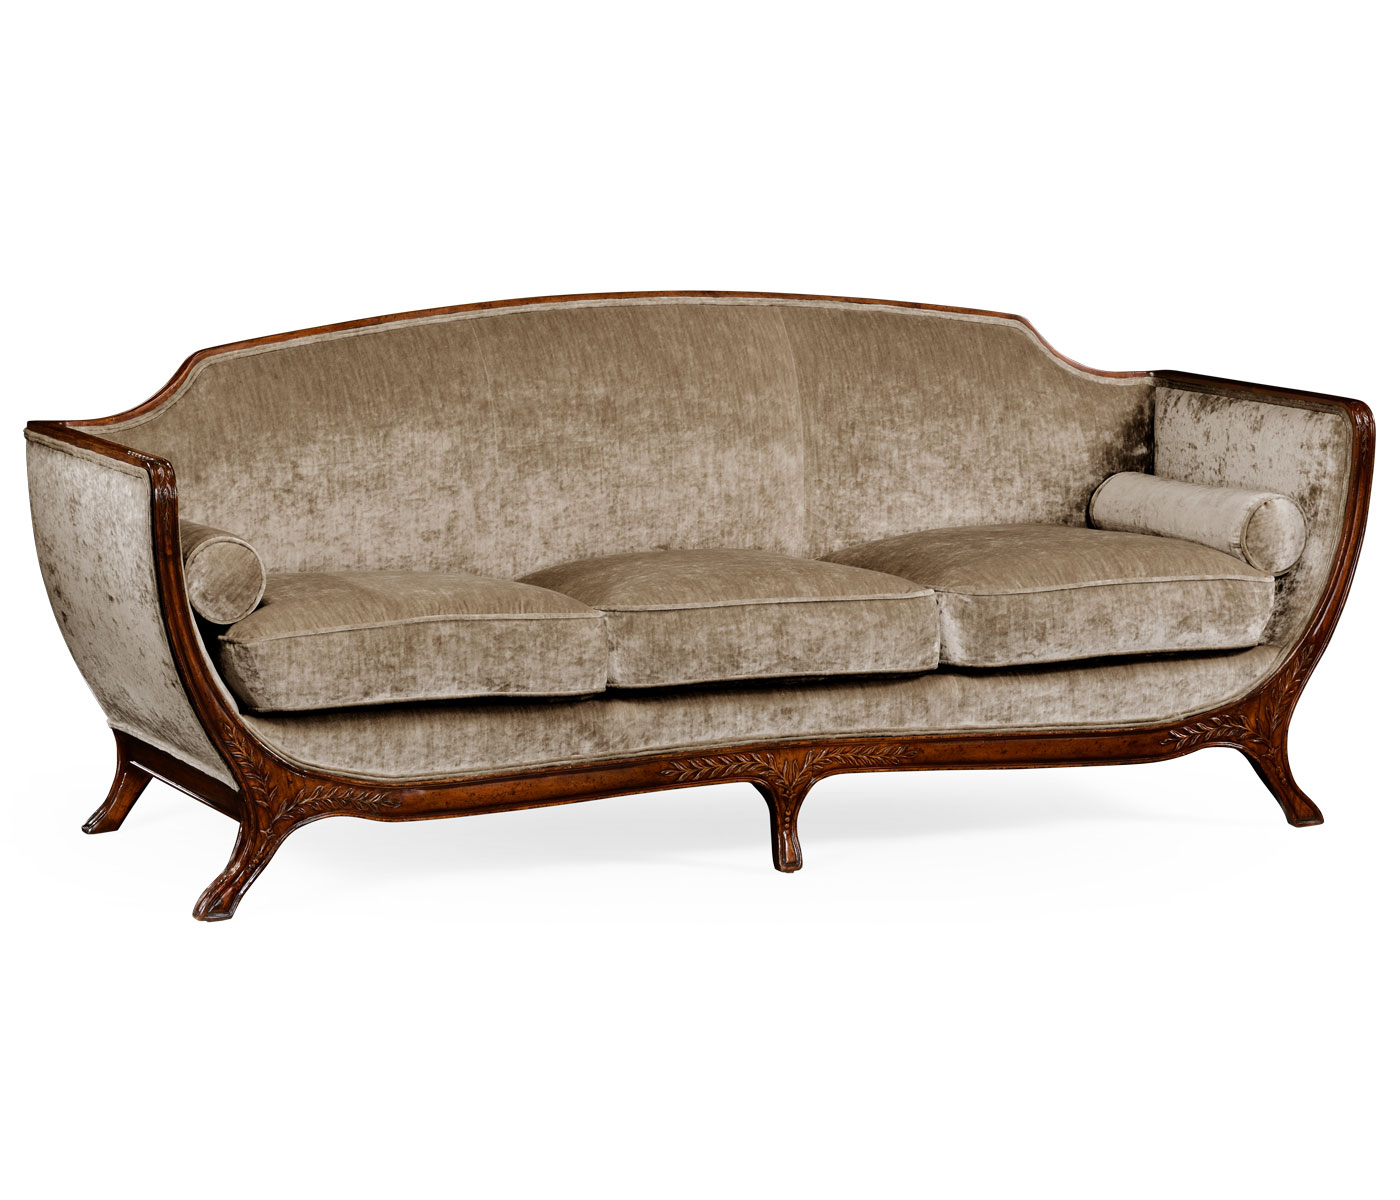 empire furniture sofa without back and arms style imperial lion with wings in